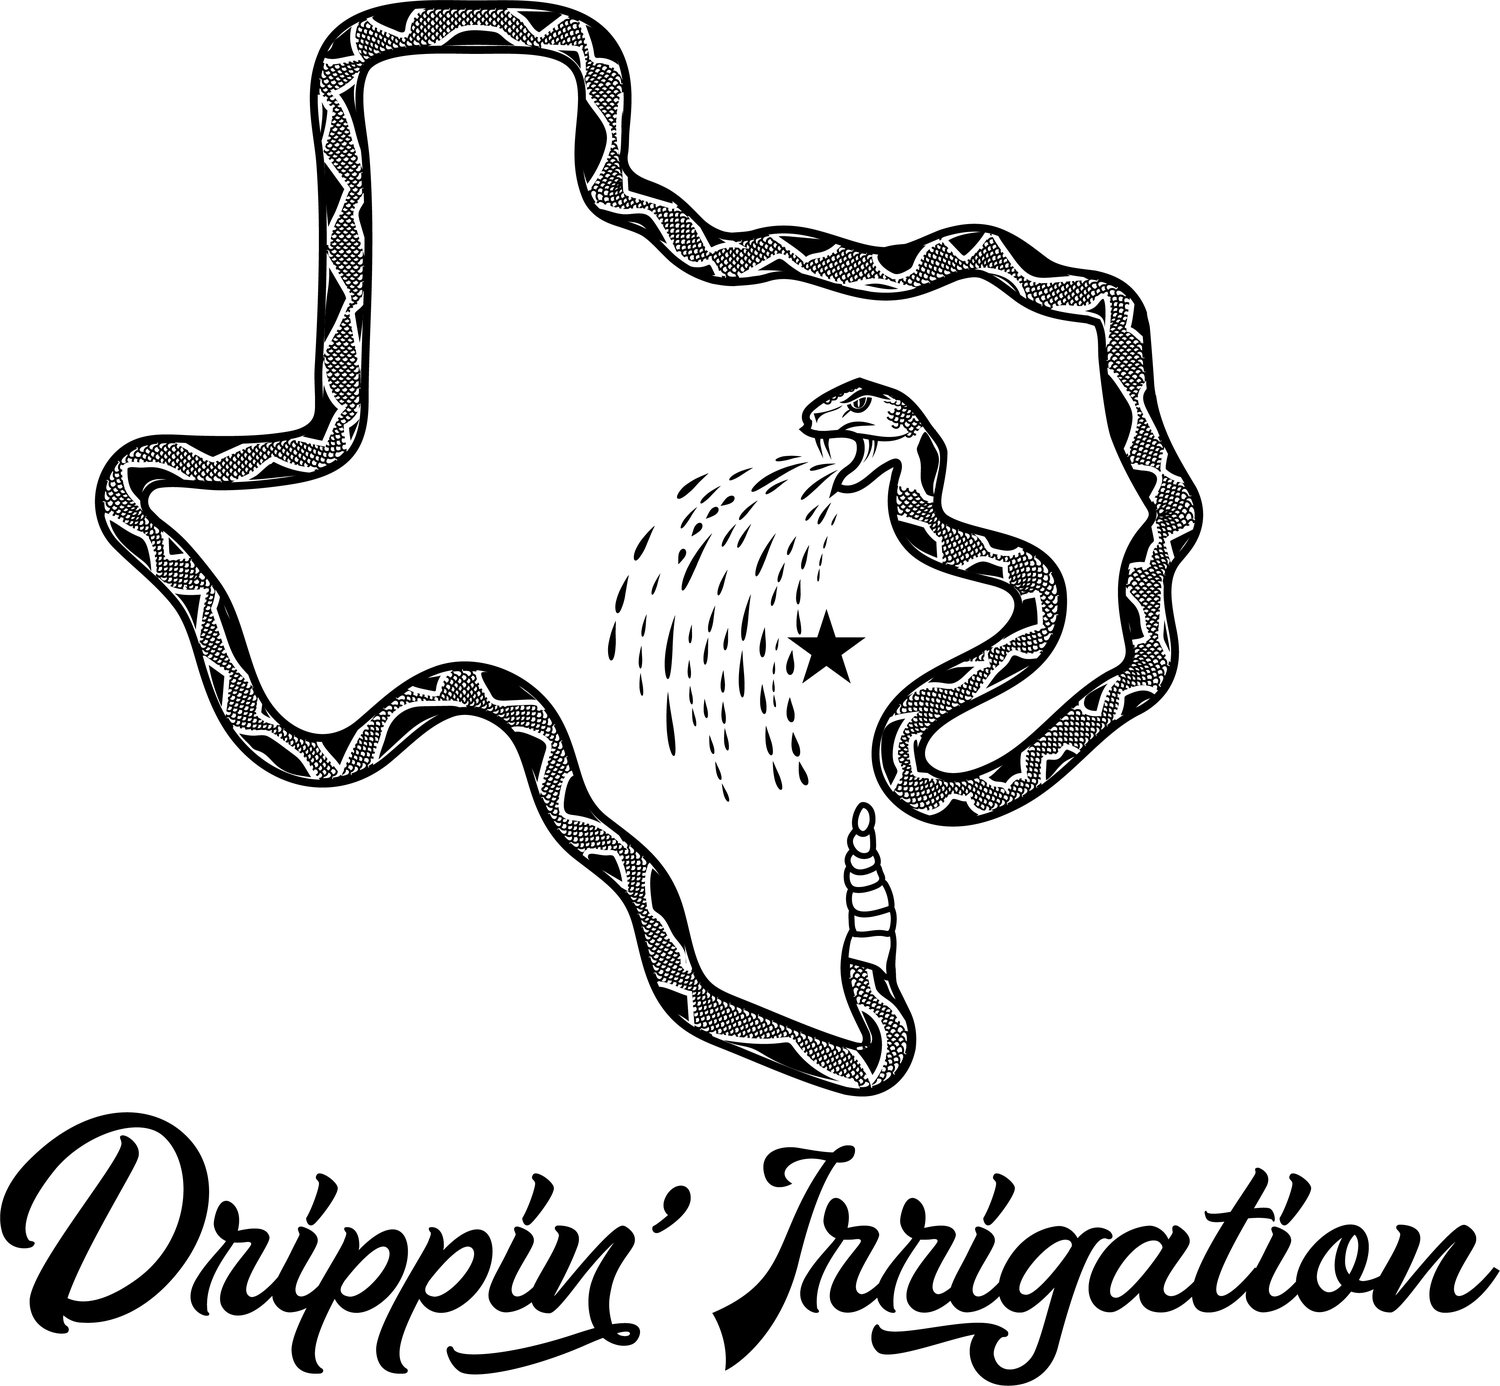 Drippin' Irrigation